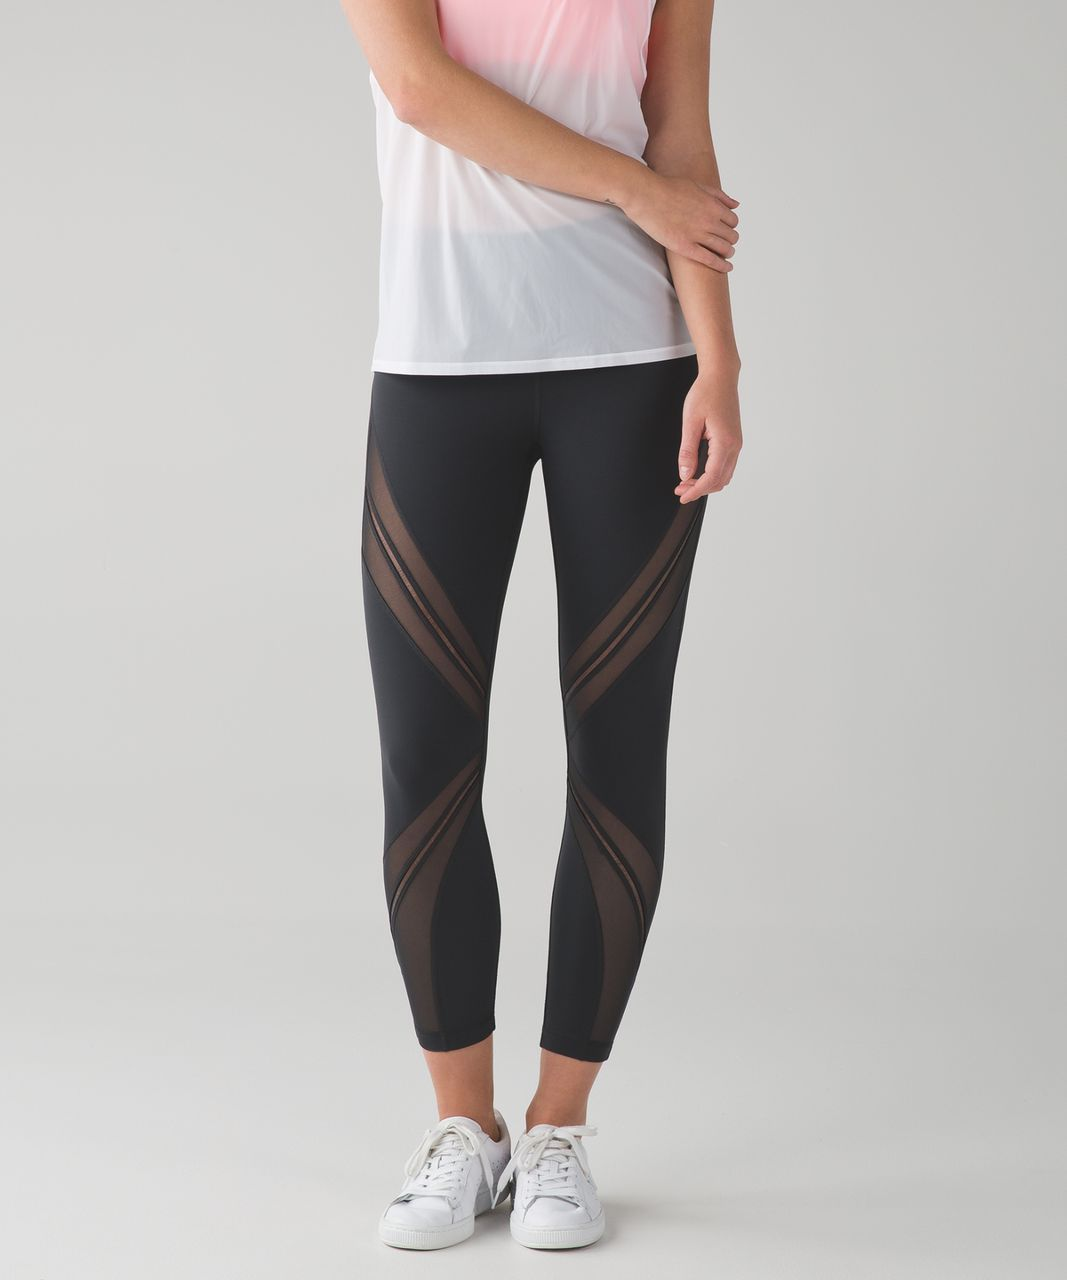 Lululemon High Times Pant (Metta) *Full-On Luxtreme - Cyber Stripe Deep Coal Black